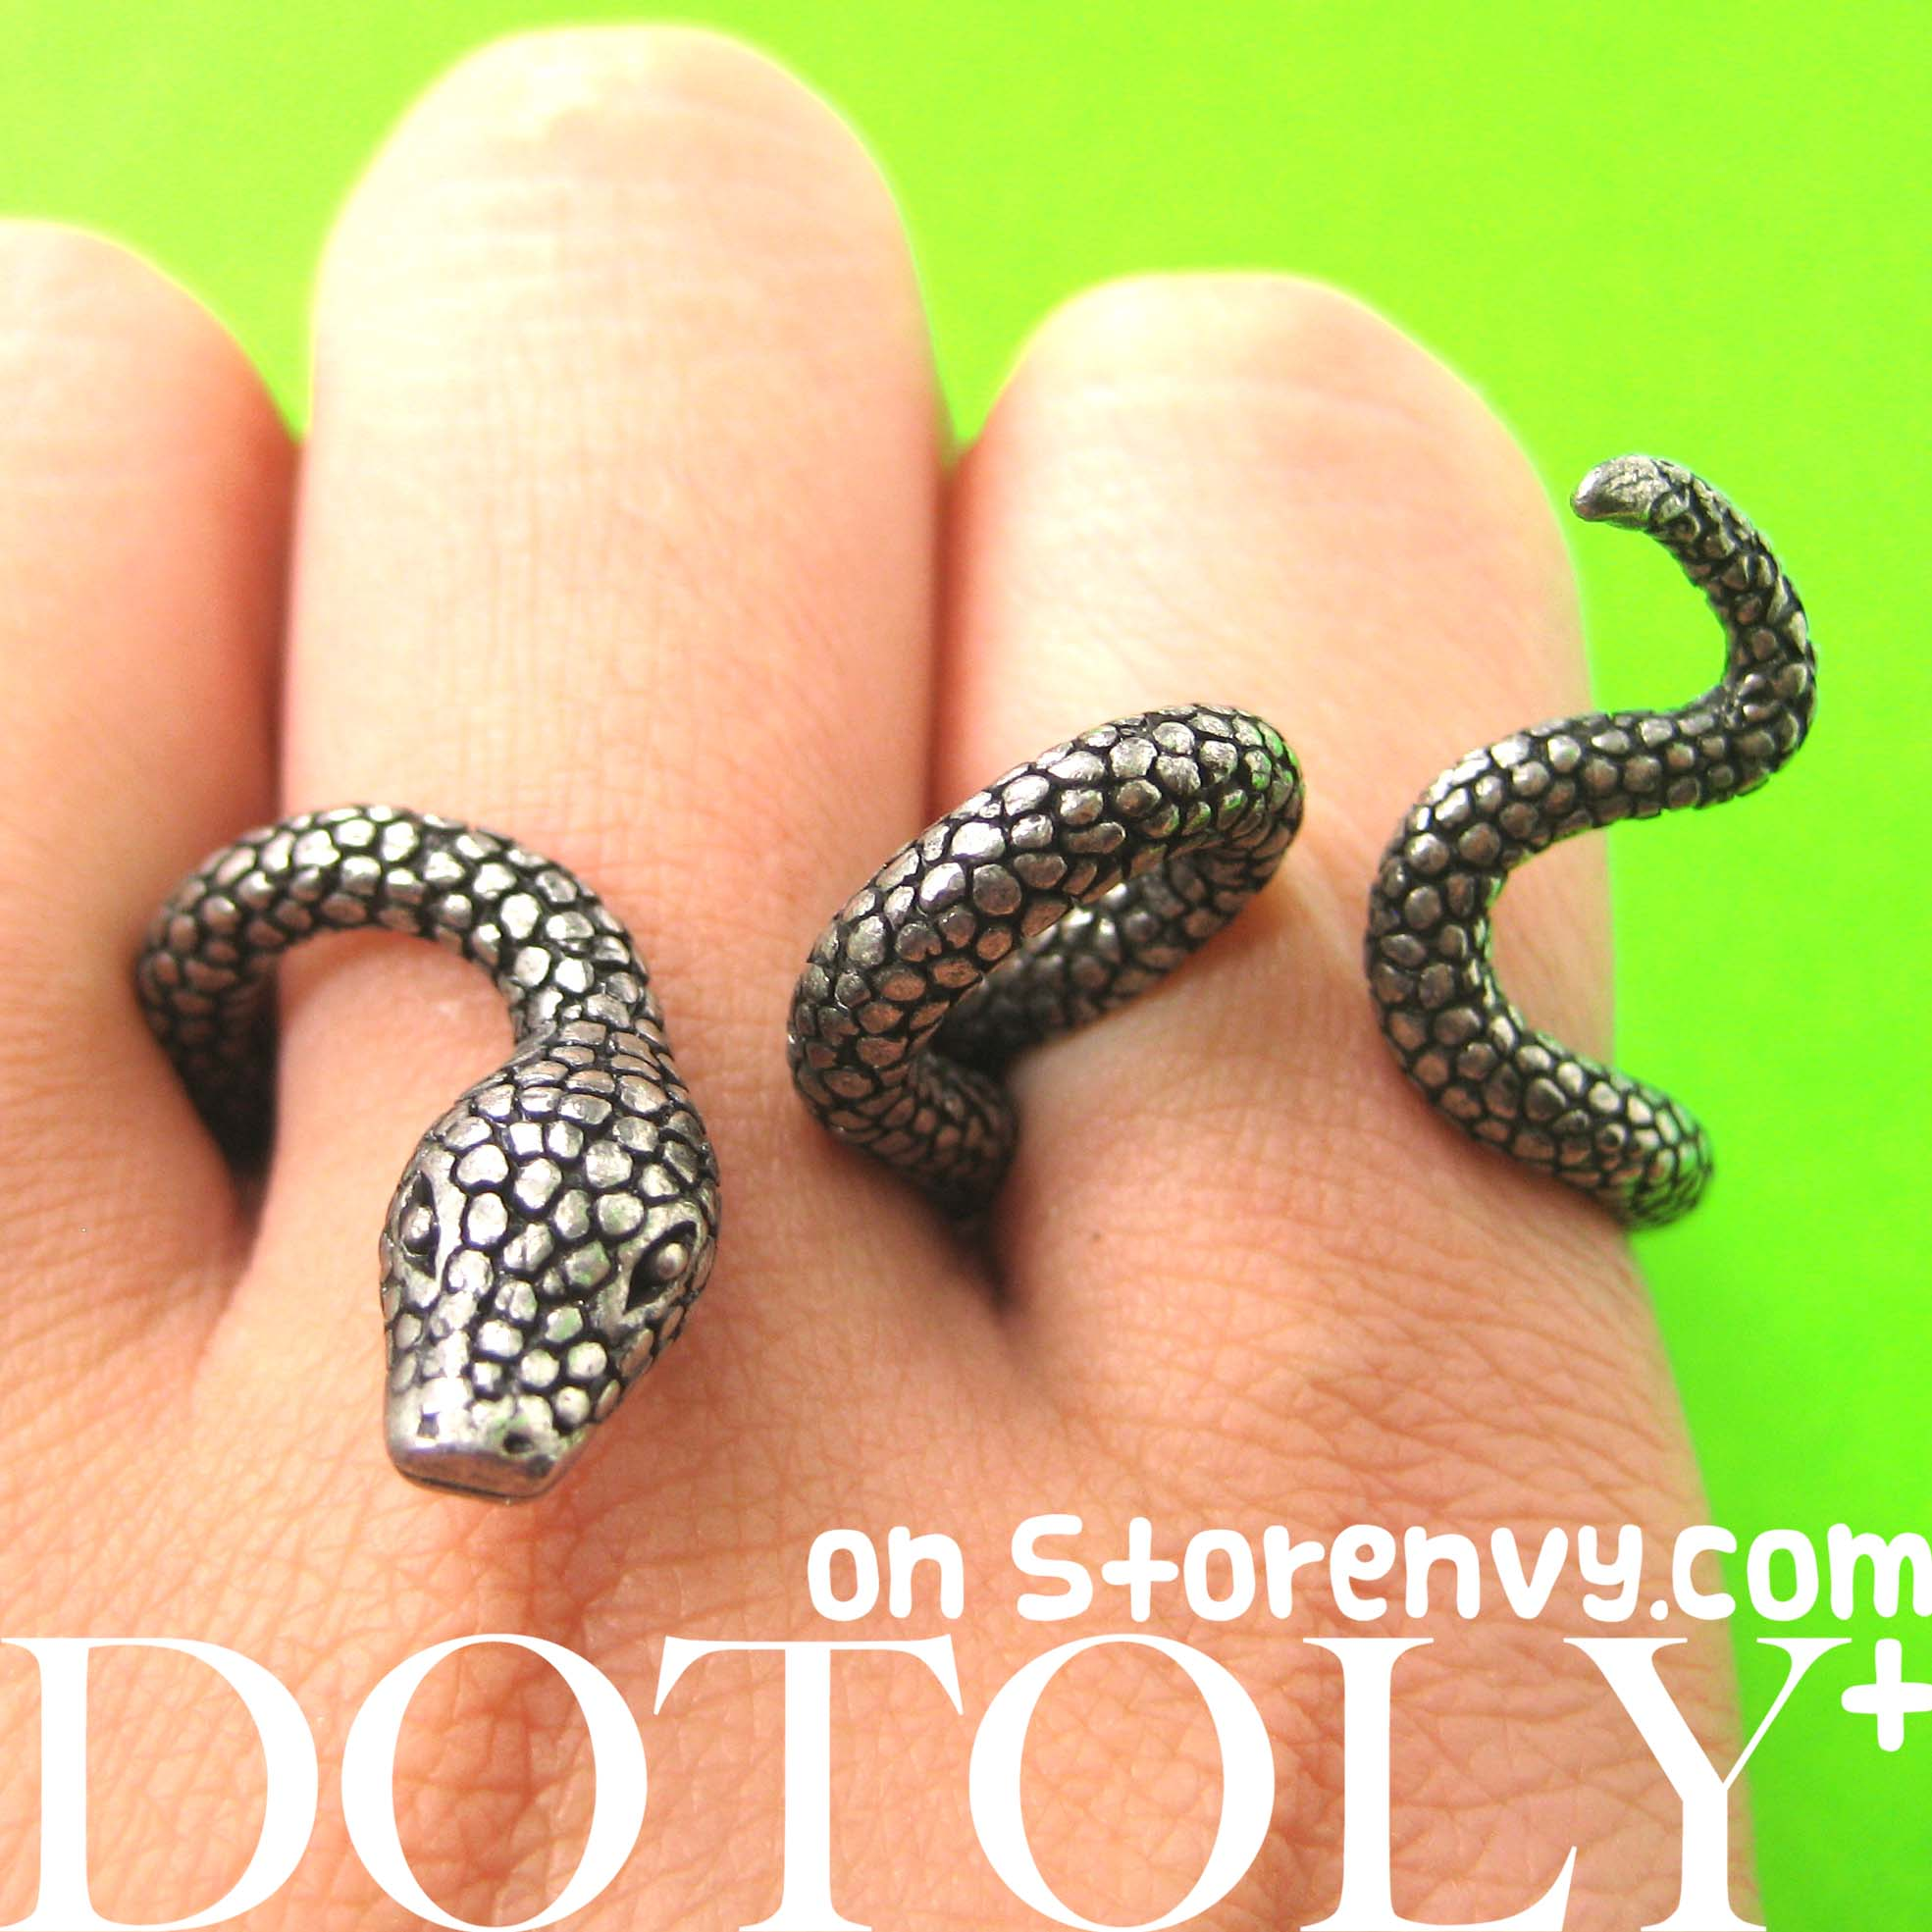 free product over silver sterling sea ring indonesia jewelry handmade rings watches serpent orders shipping on overstock